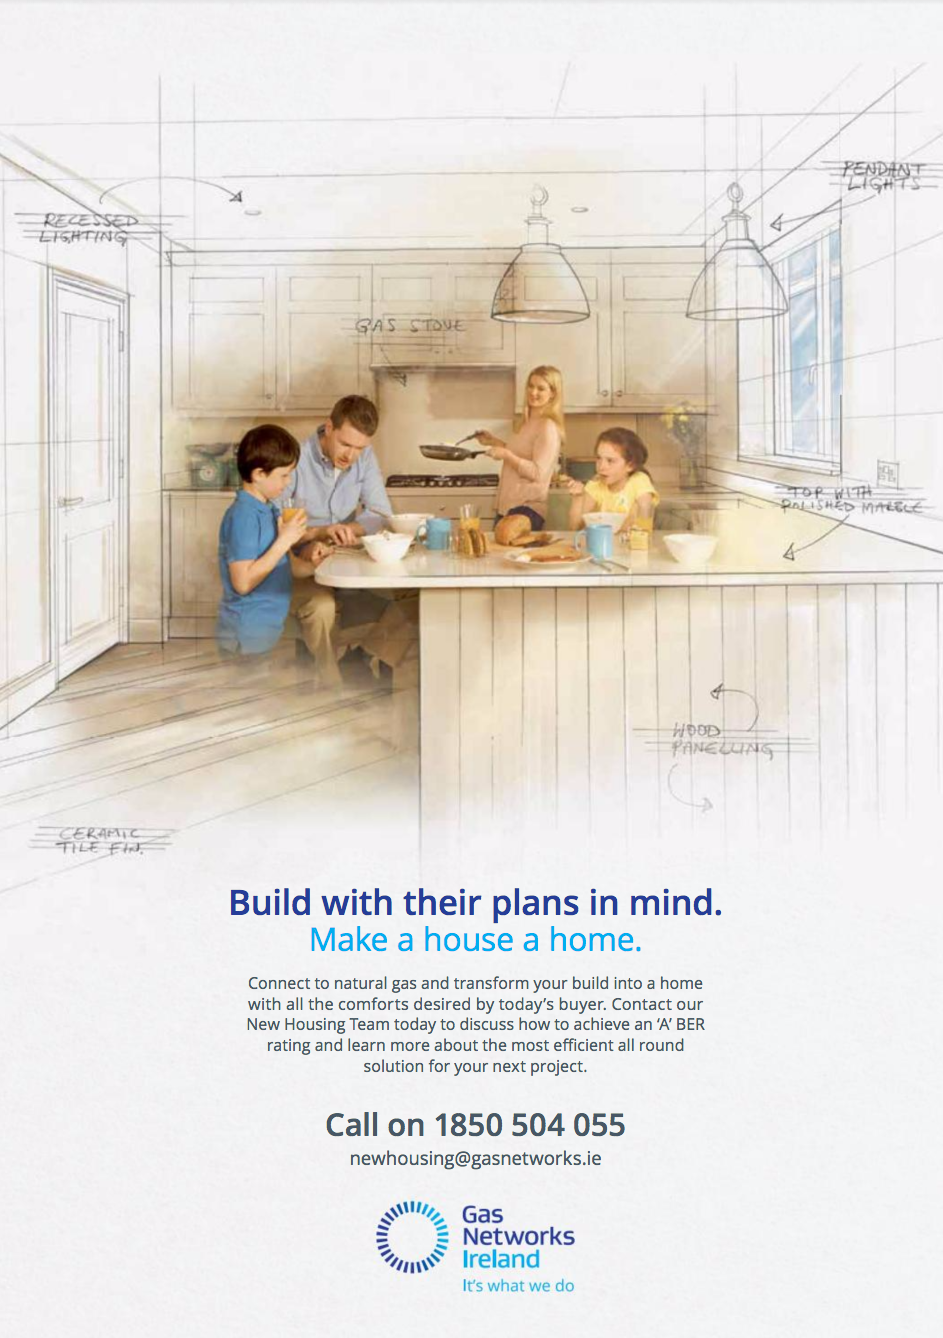 Gas Networks Ireland – build with their plans in mind